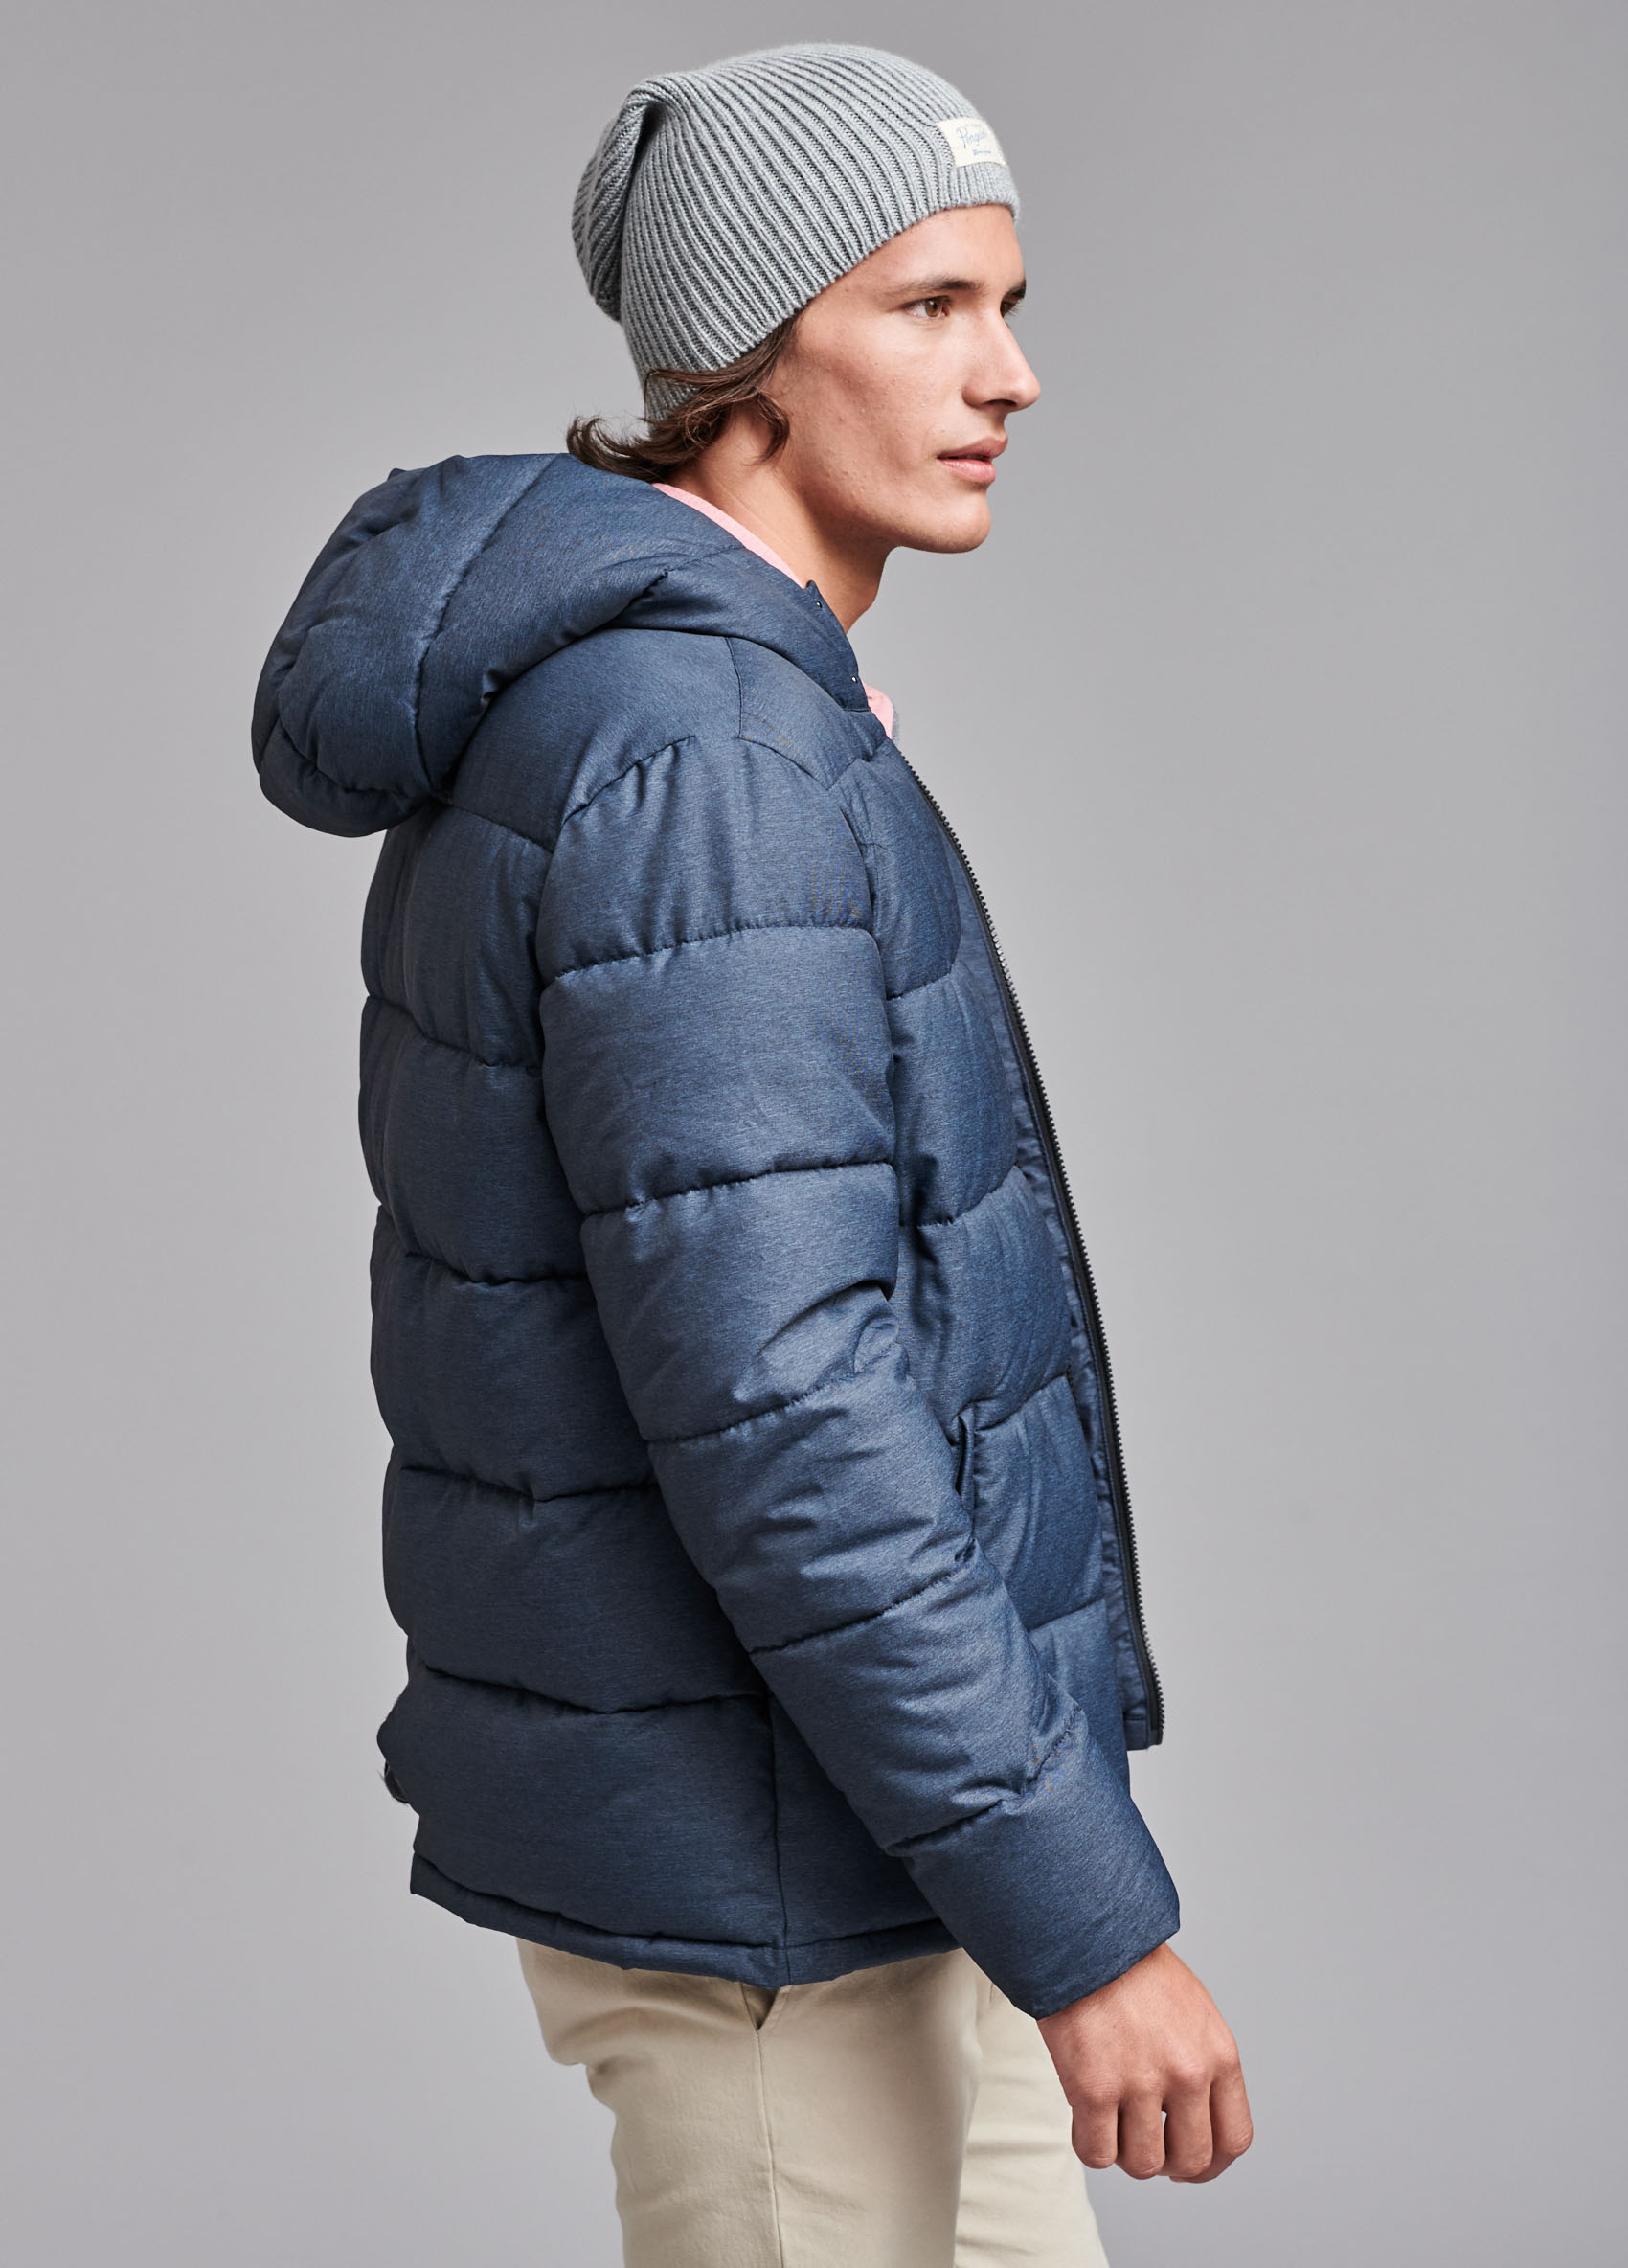 penguin_insulated-melange-puffer-jacket_01-20-2019__picture-8936